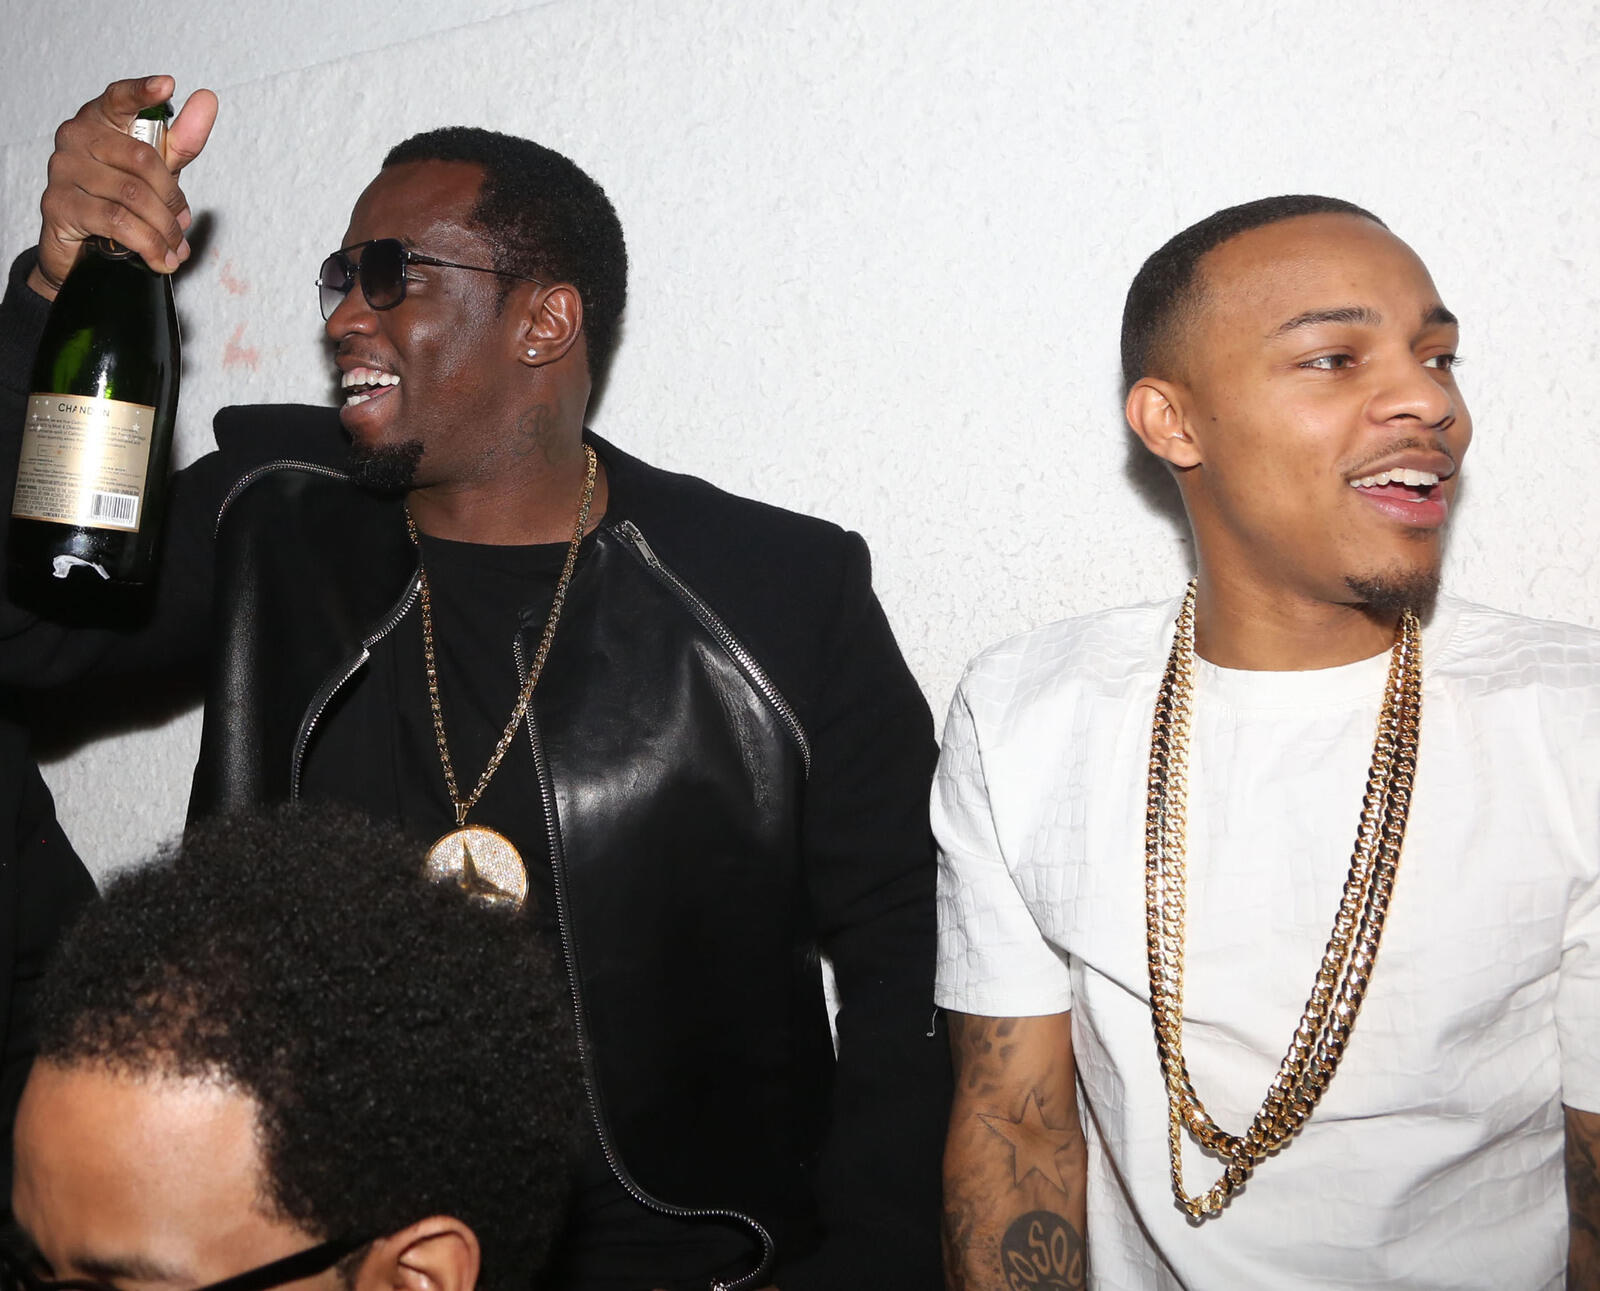 18: 09/29/21 - Bow Wow Says He Talked To Diddy For 1.5 Hours About Dating His Ex, Joie Chavis